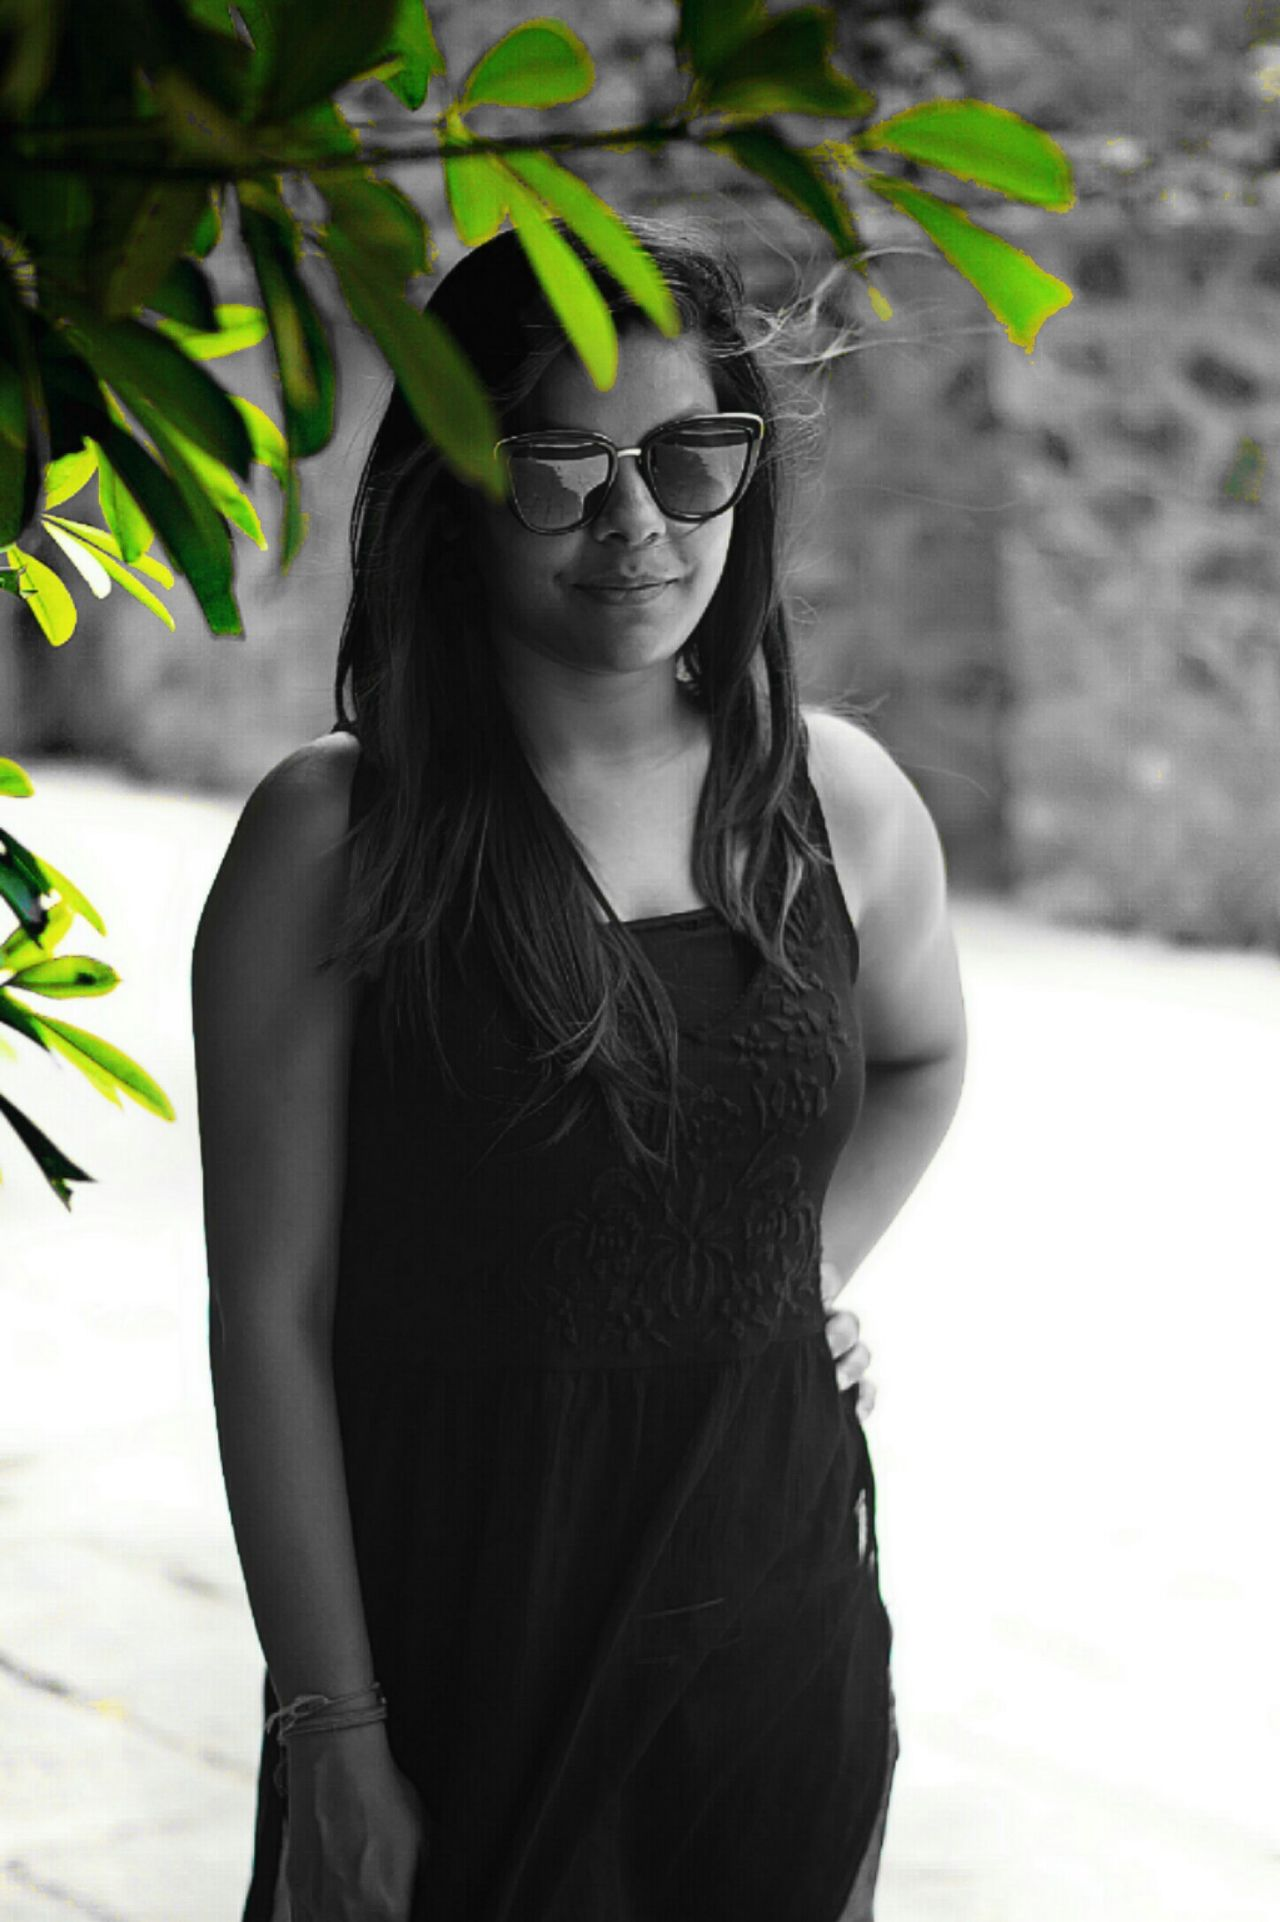 Beautiful Arushi Friend Photoshoot Hauzkhasfort Hauzkhasvillage